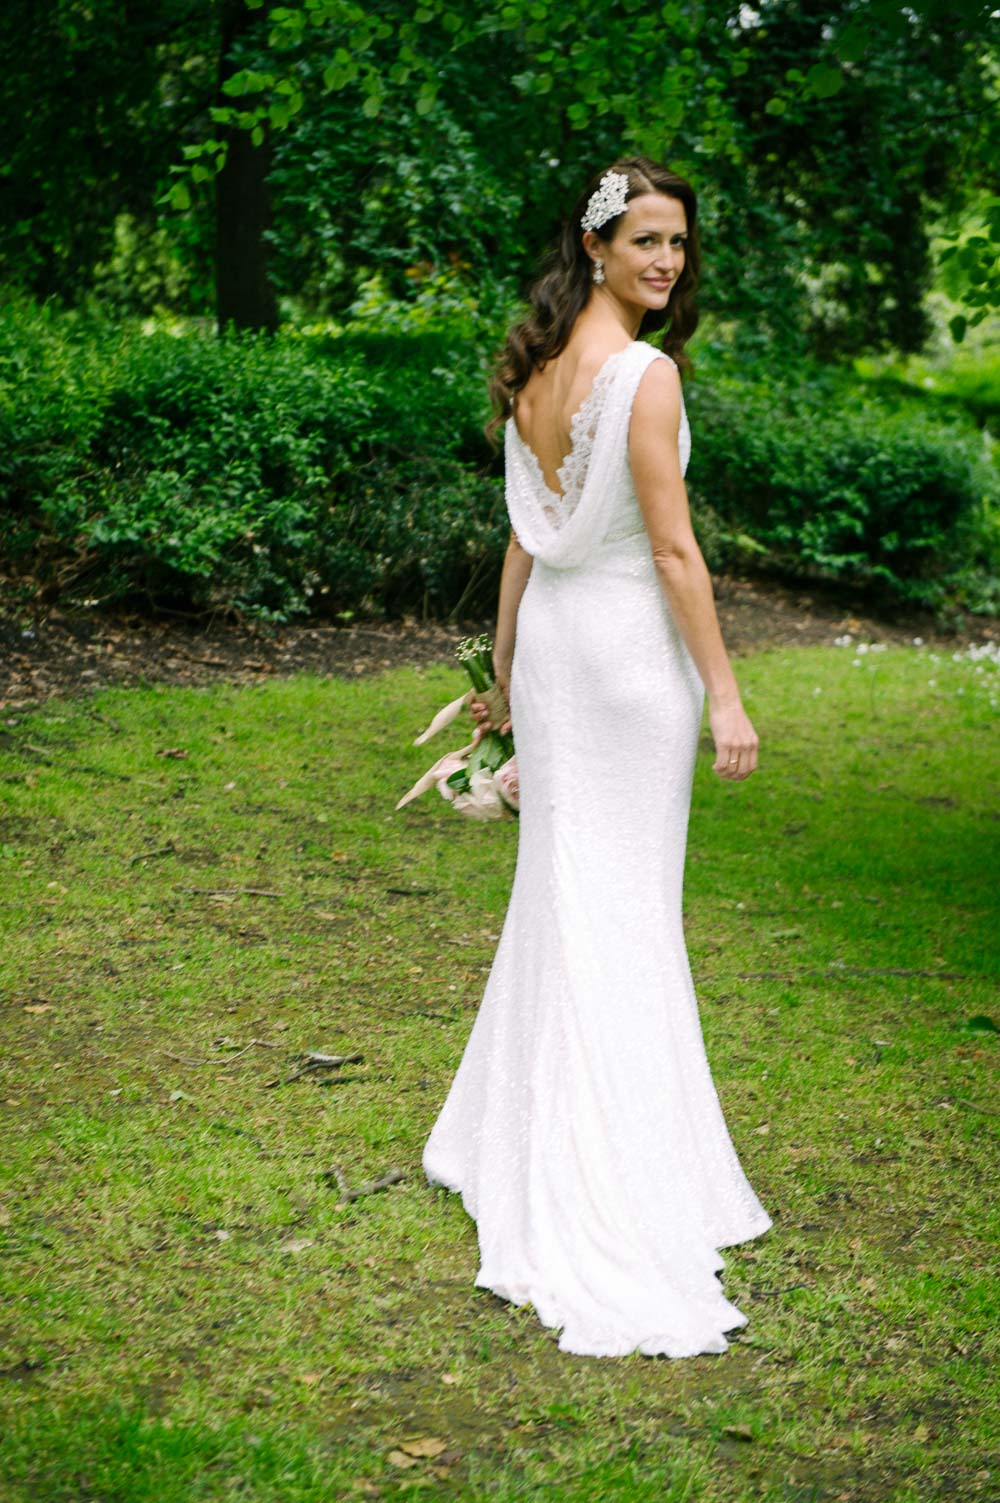 The bride poses for a wedding photograph in St. Stephen's Green during her Shelbourne Hotel Wedding Reception